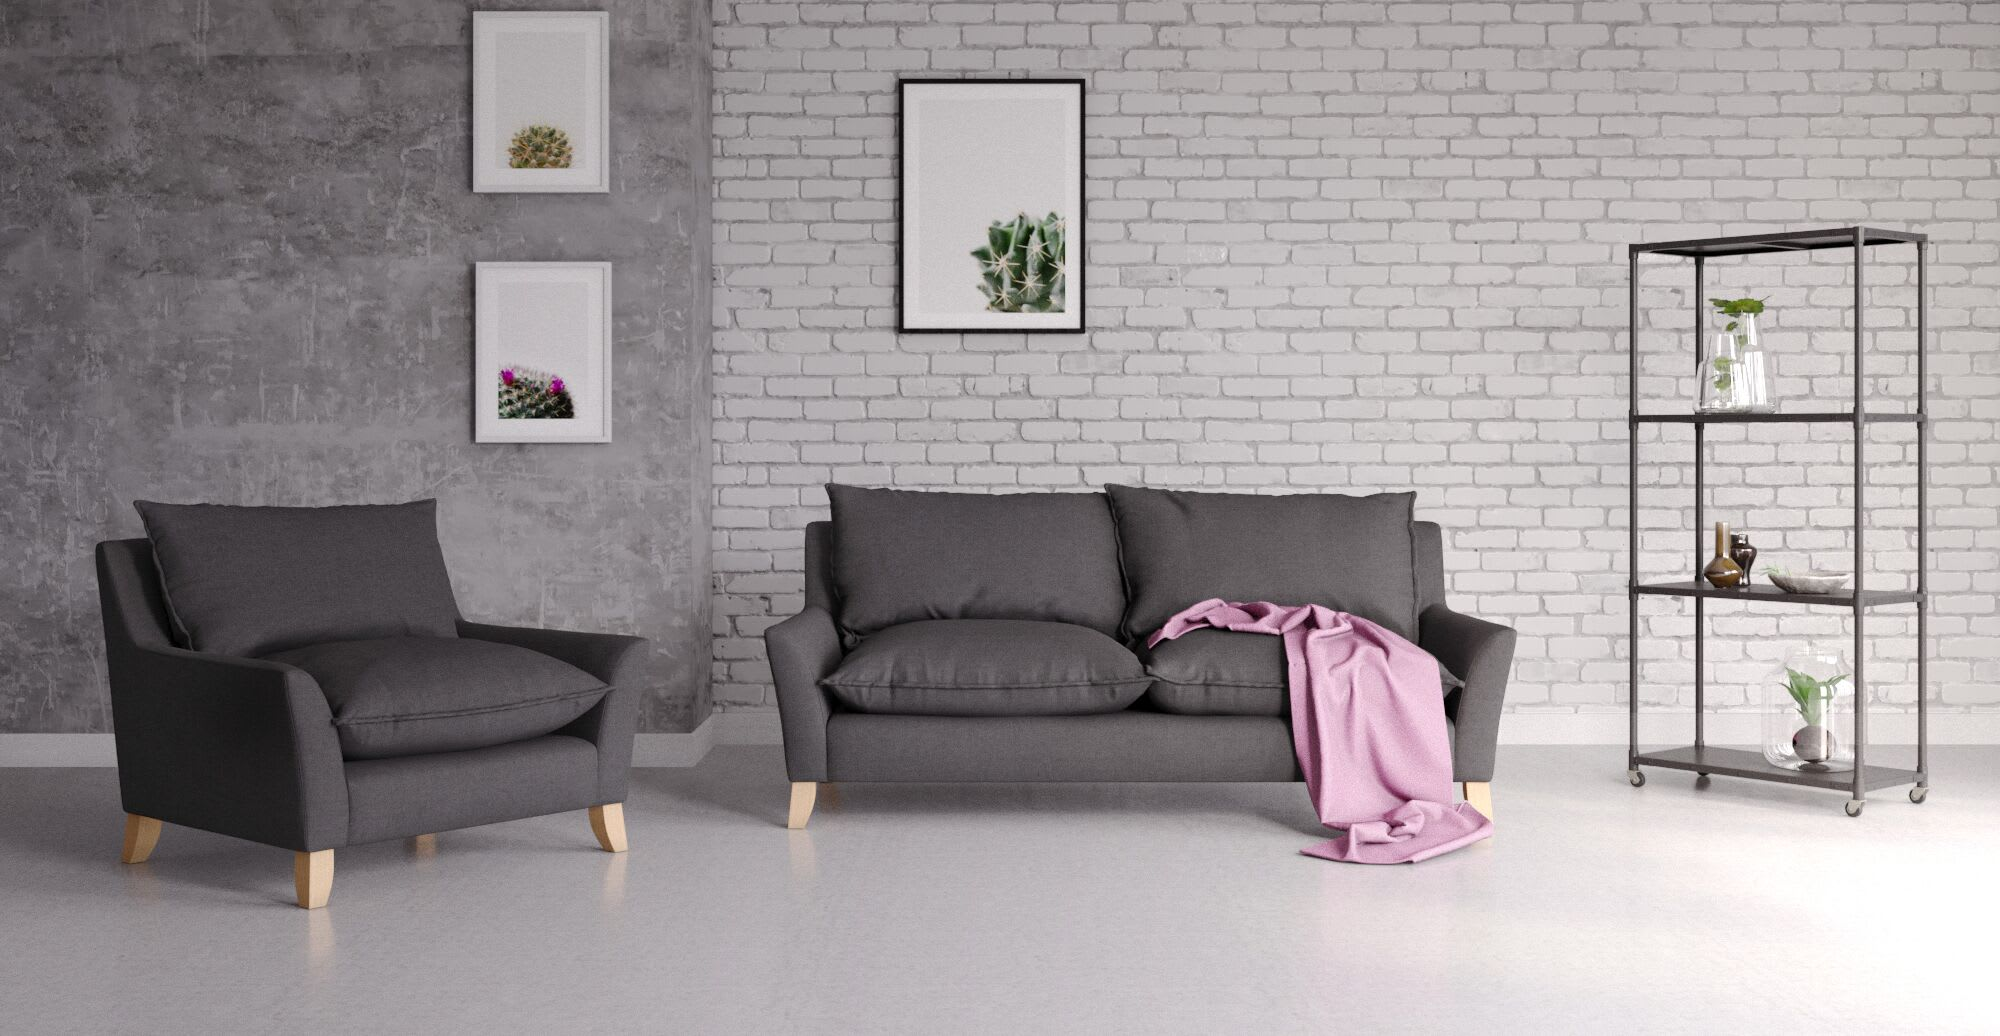 A black sofa with pink rug